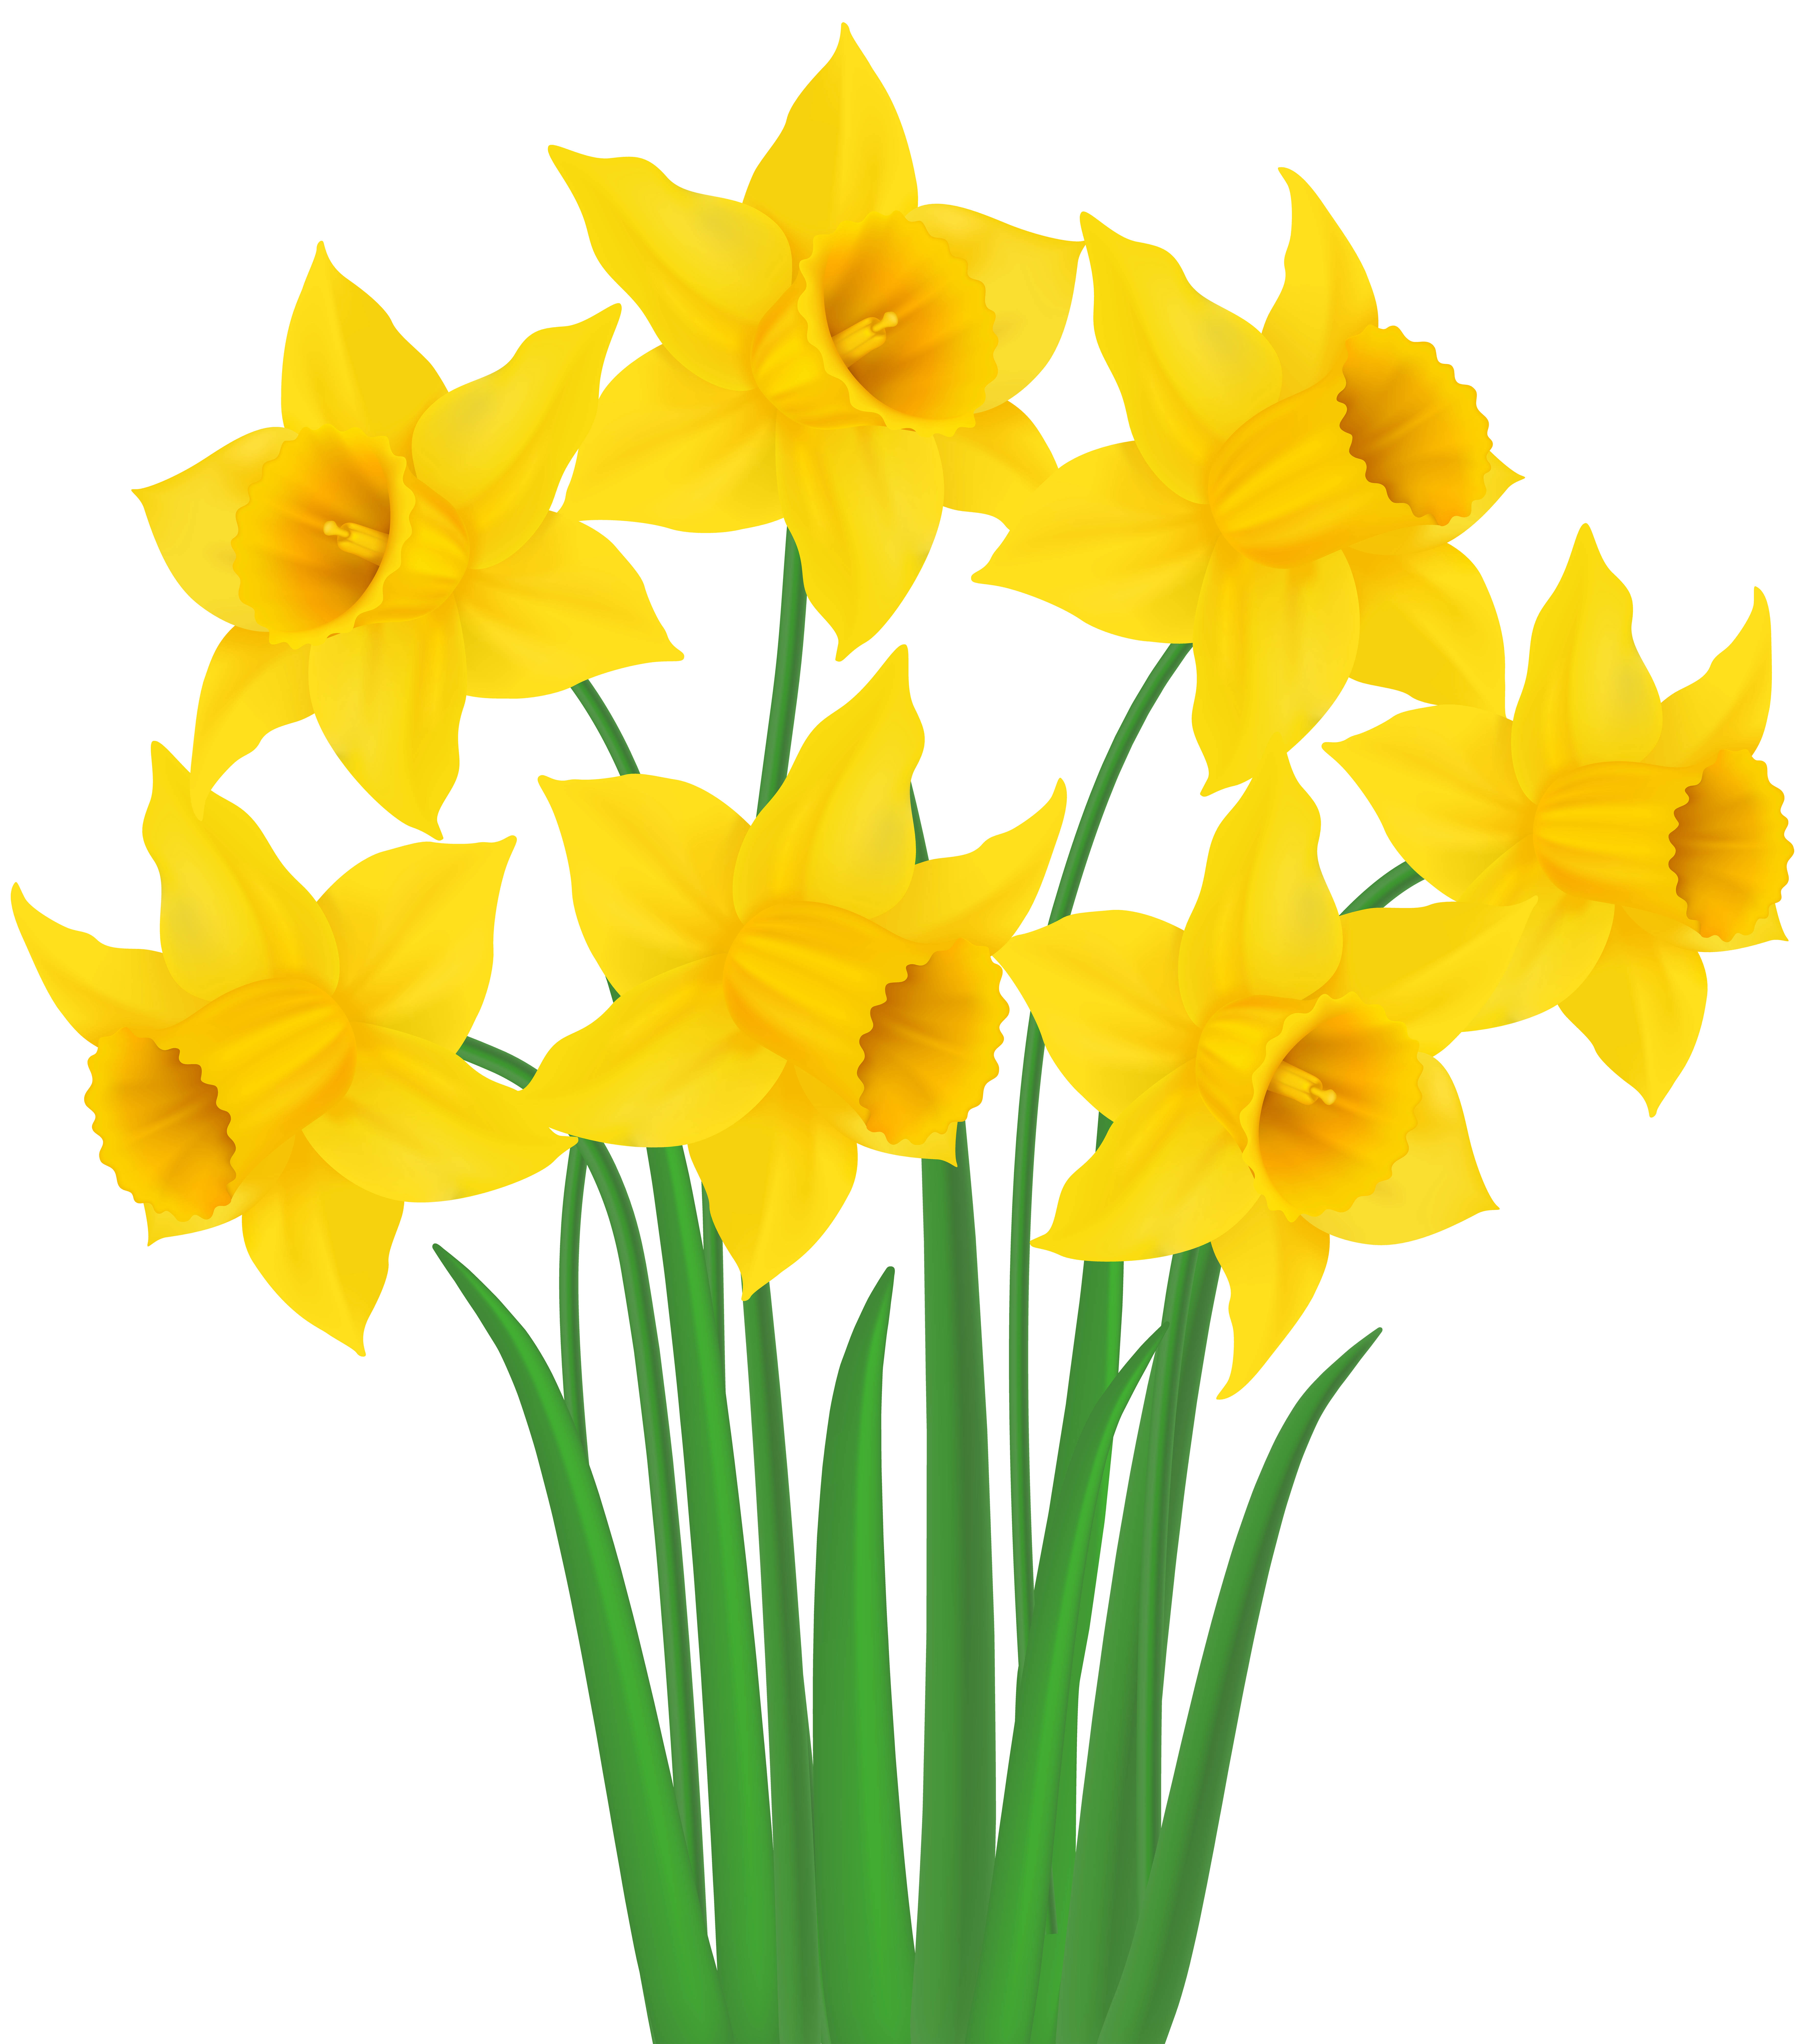 Daffodils clipart freeuse download Clipart daffodils clipart images gallery for free download | MyReal ... freeuse download